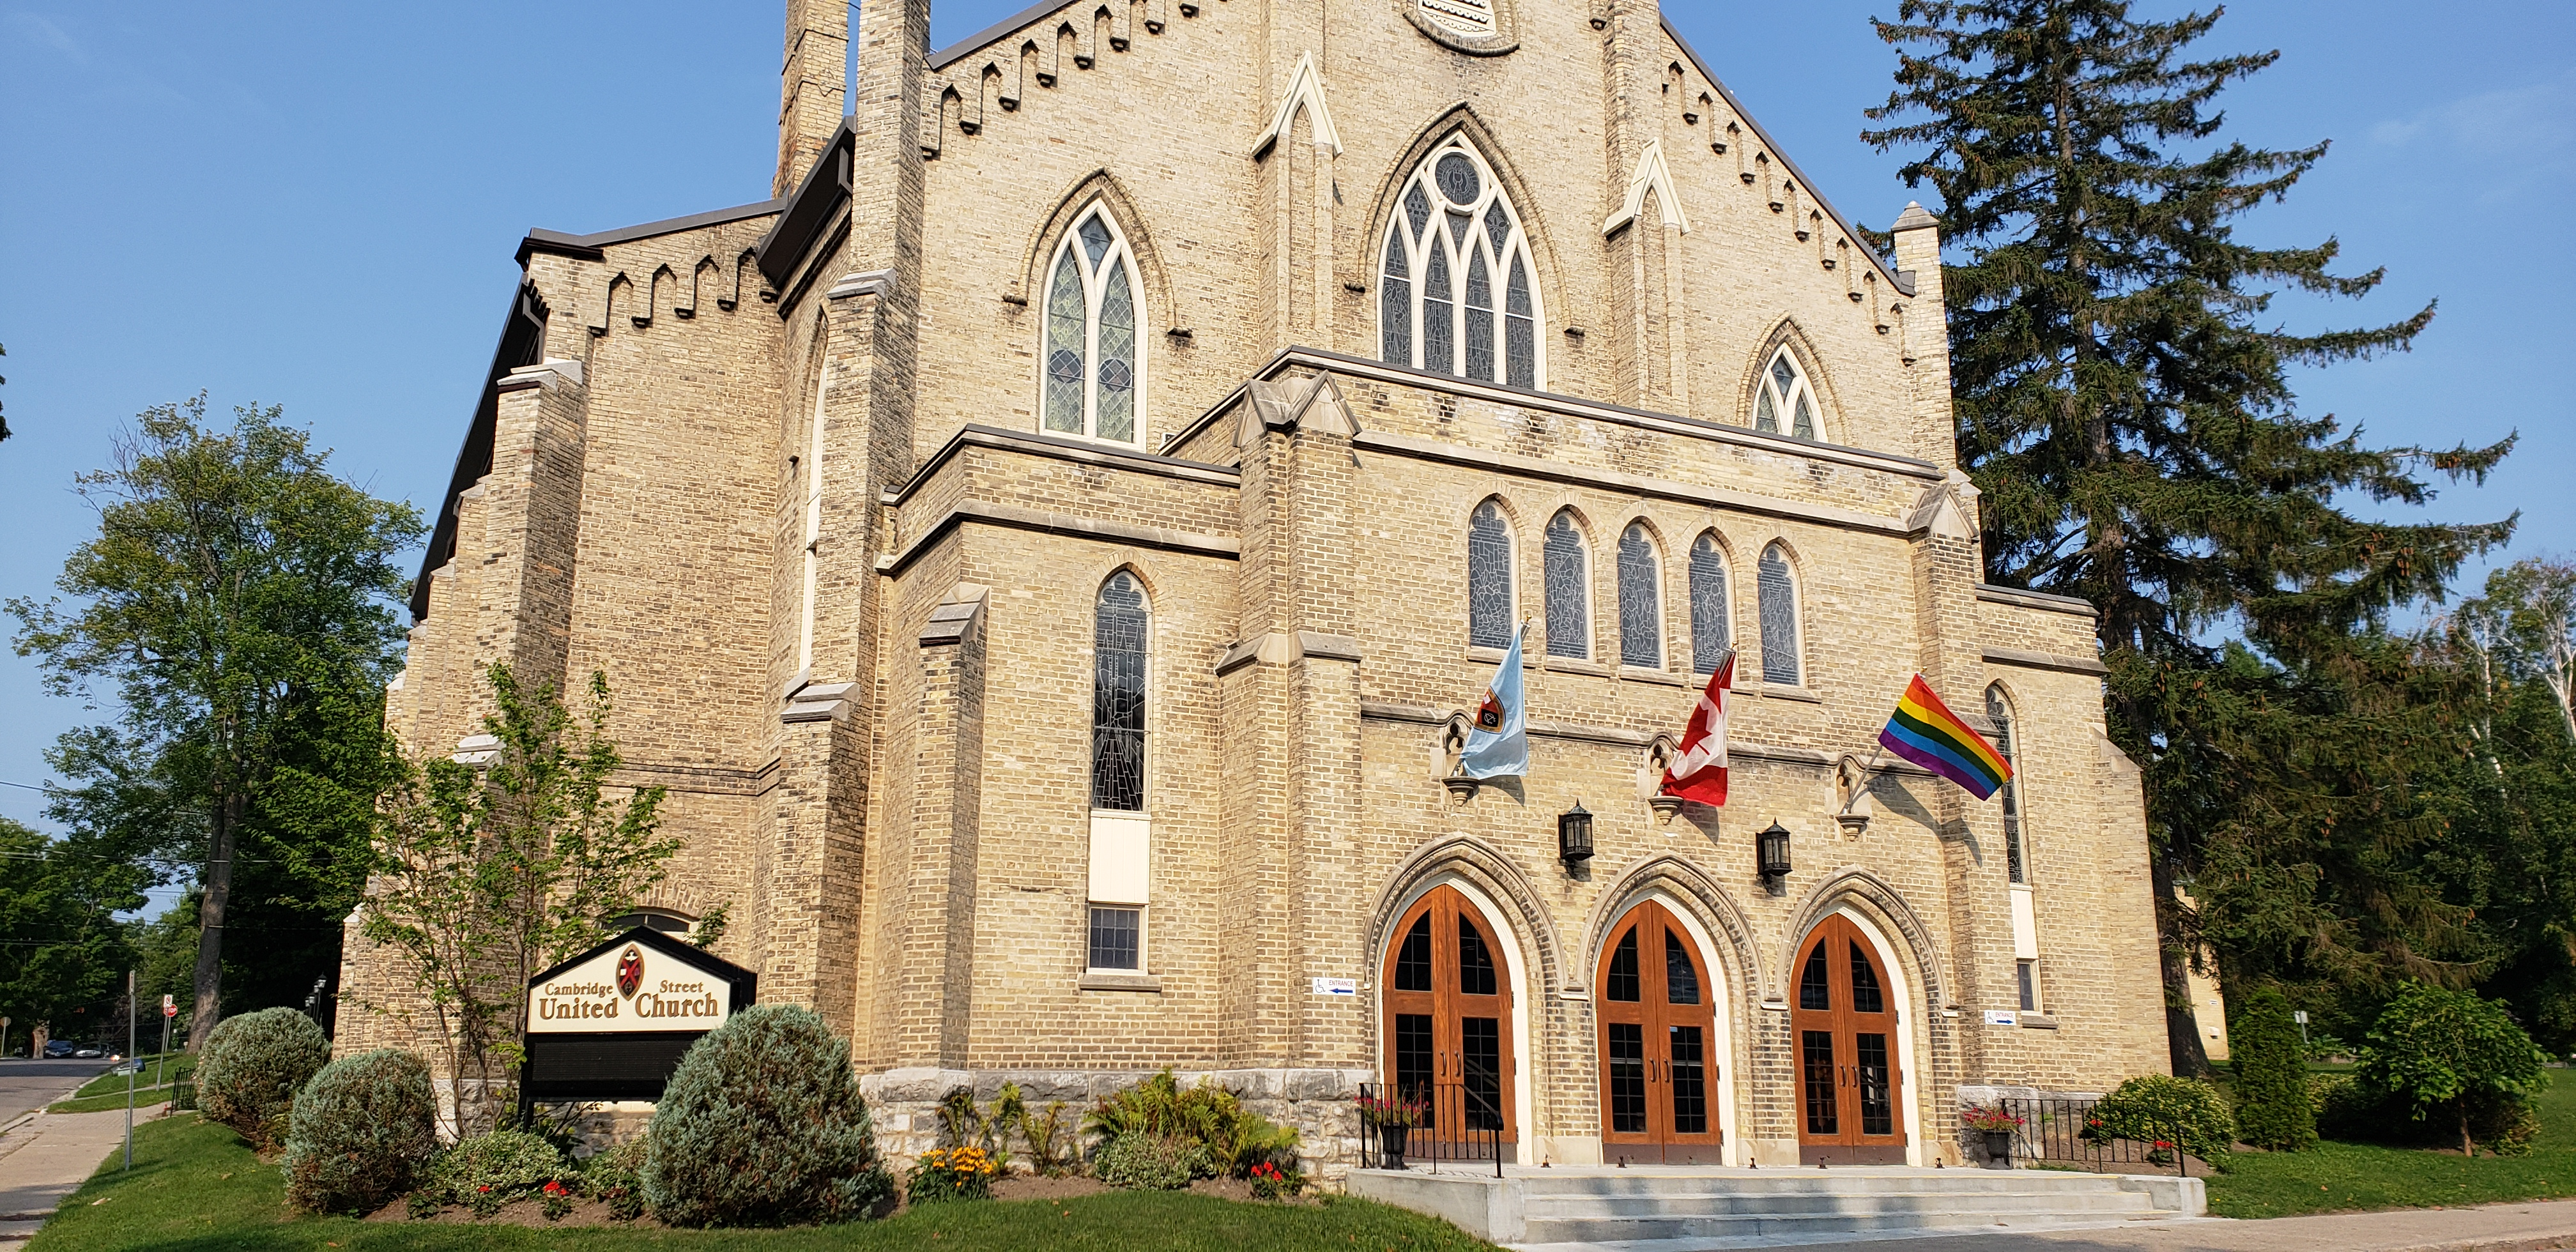 Cambridge Street United Church in Lindsay, Ontario